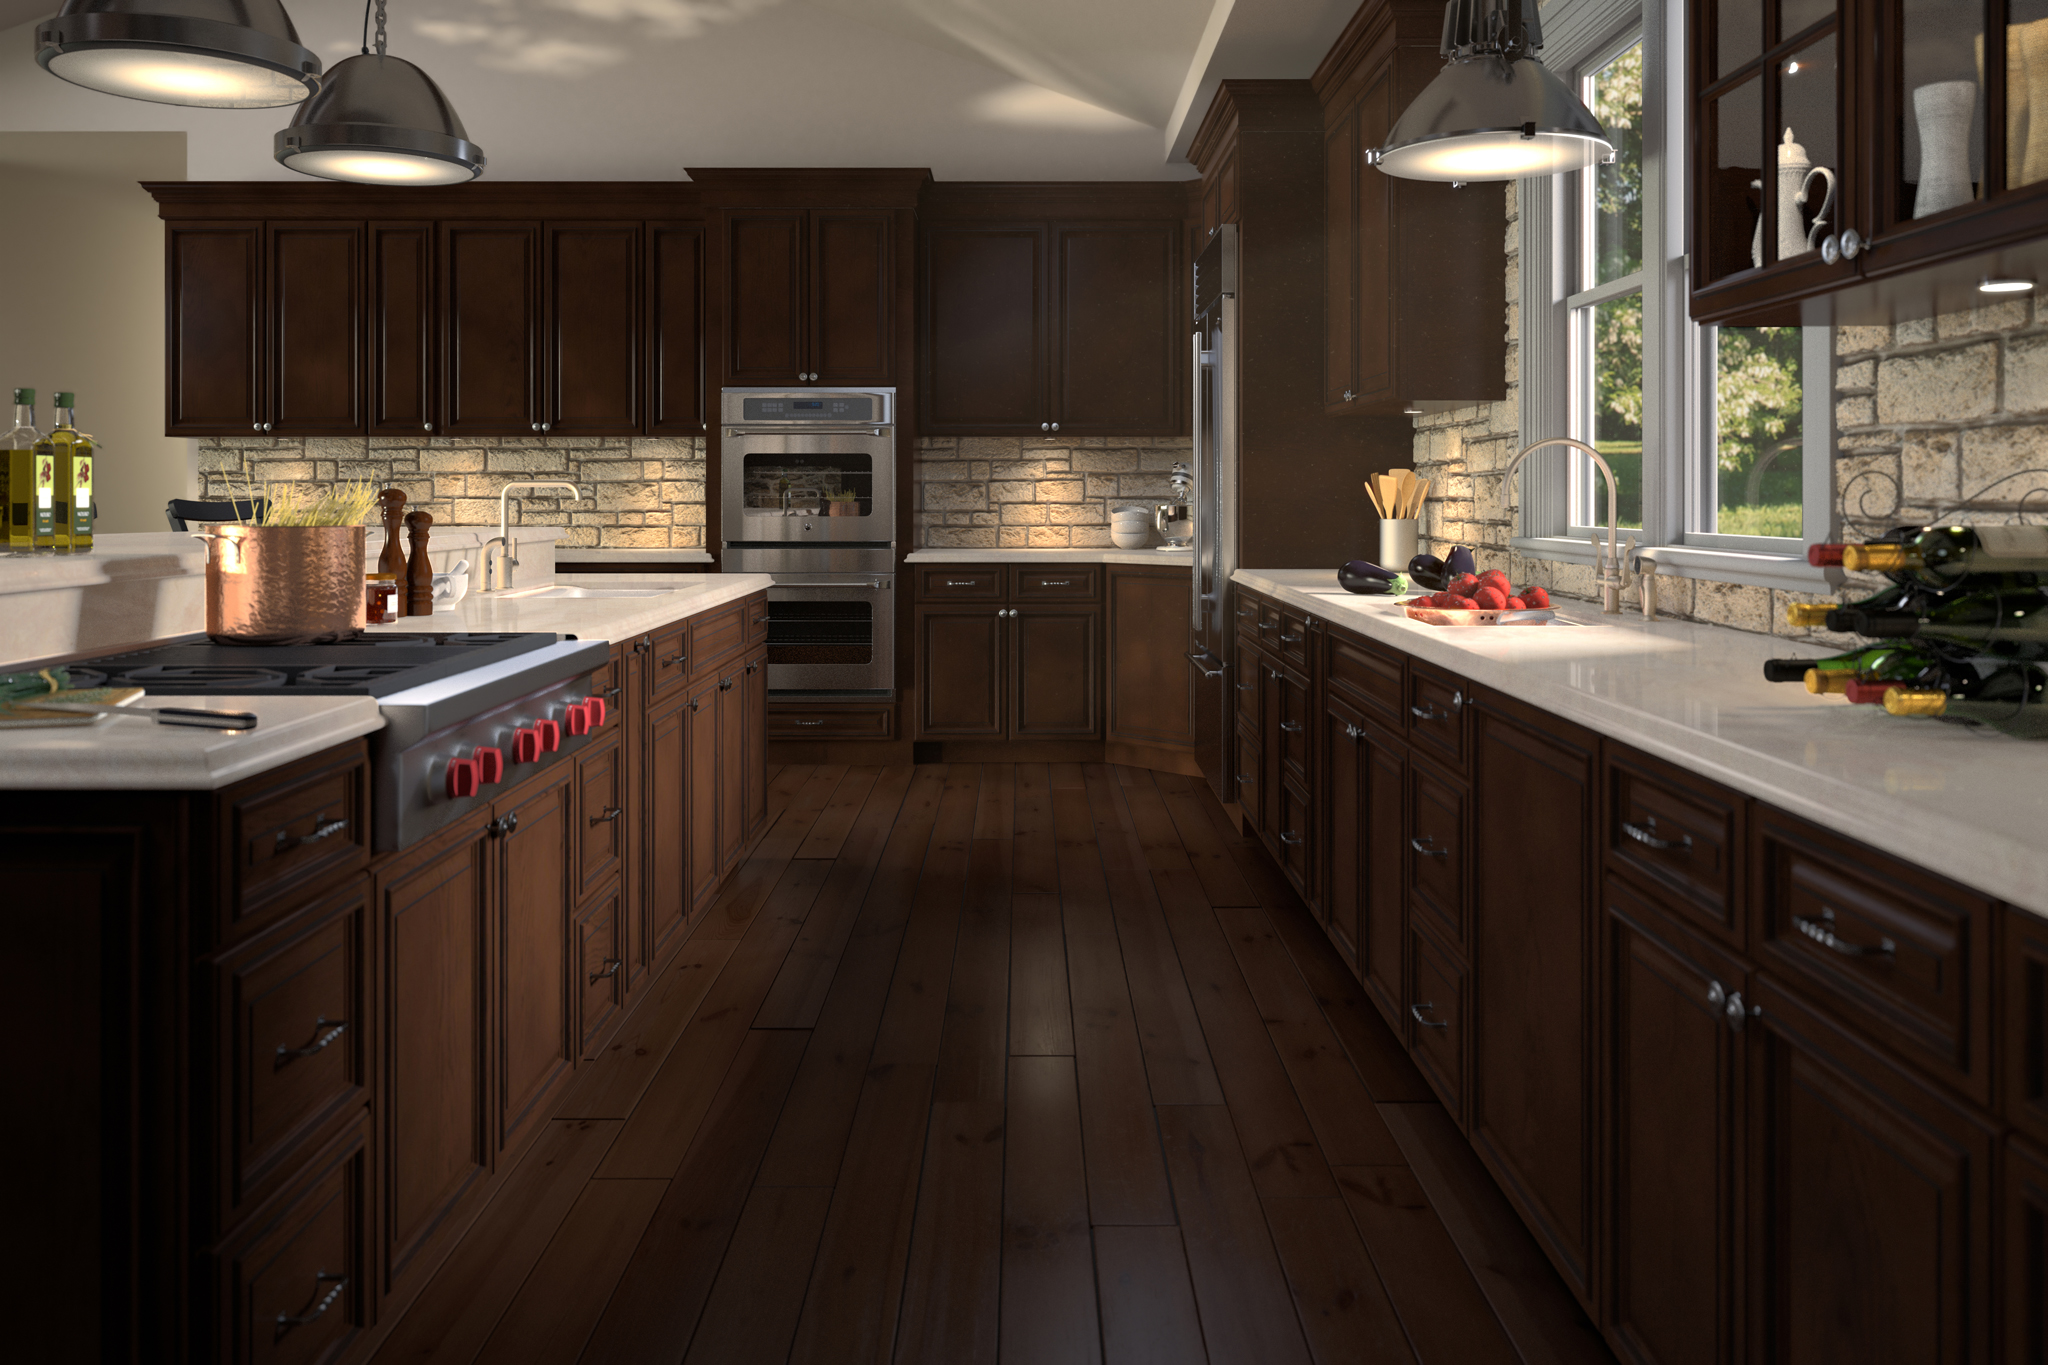 3d rendering of dark kitchen cabinets with pasta on stove